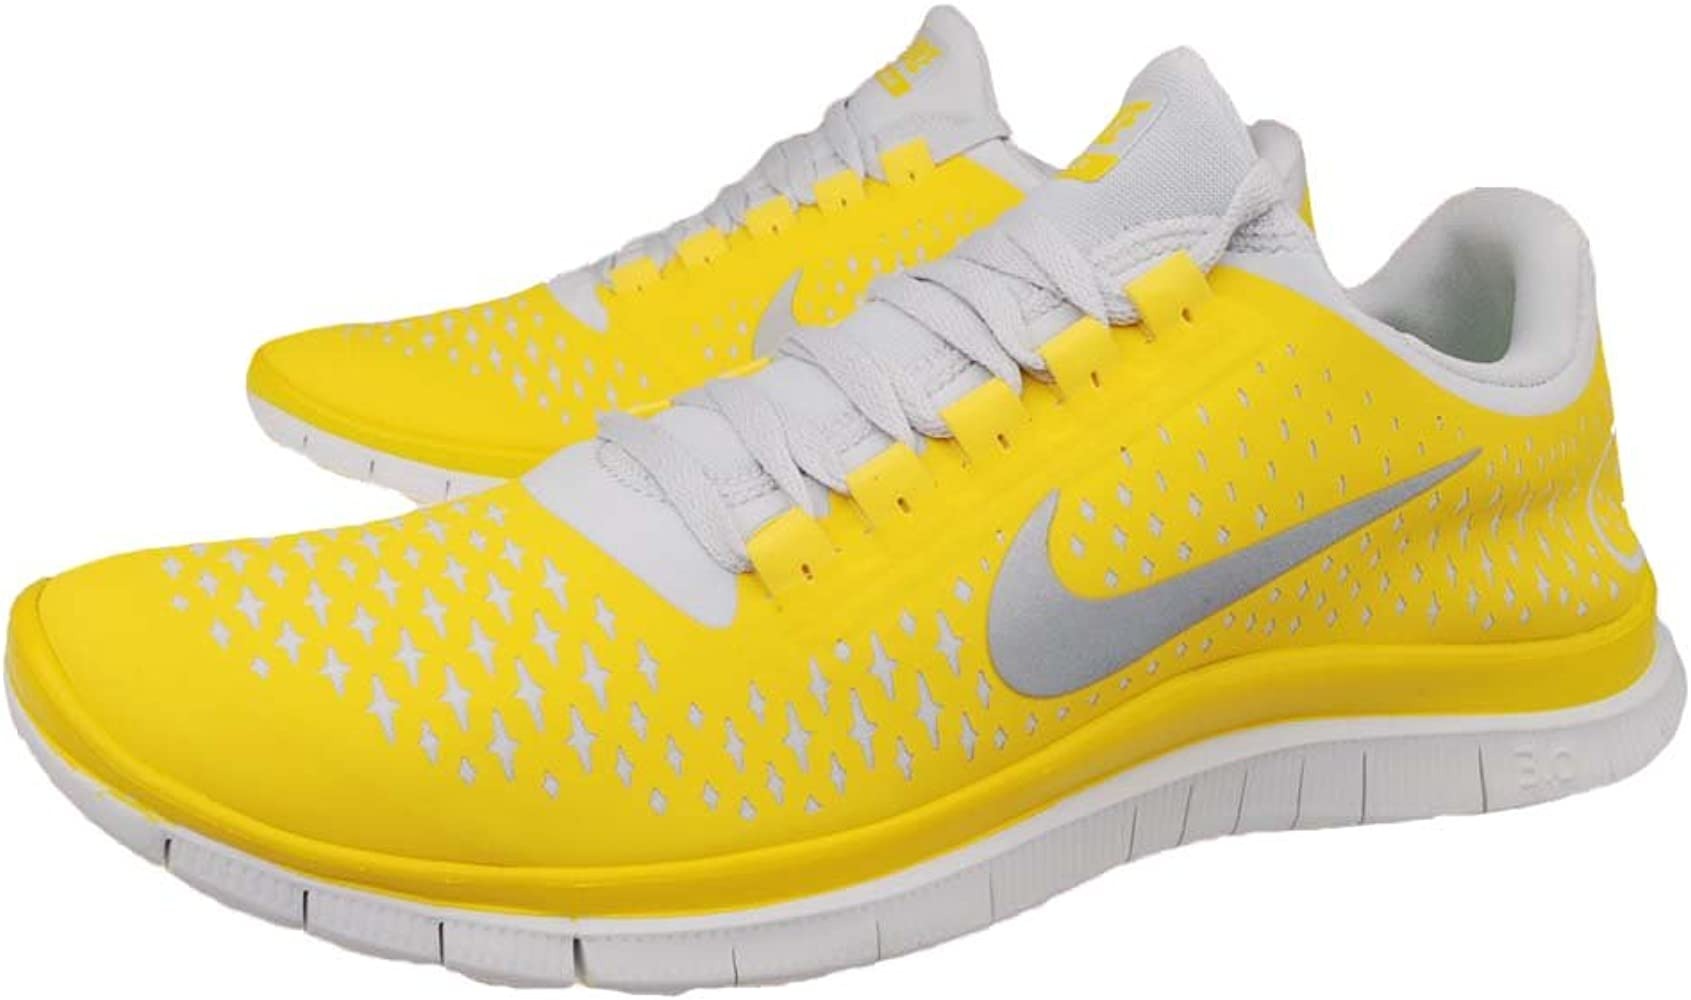 Nike Free 3.0 V4 - Zapatillas de Running, Color Amarillo, Talla ...